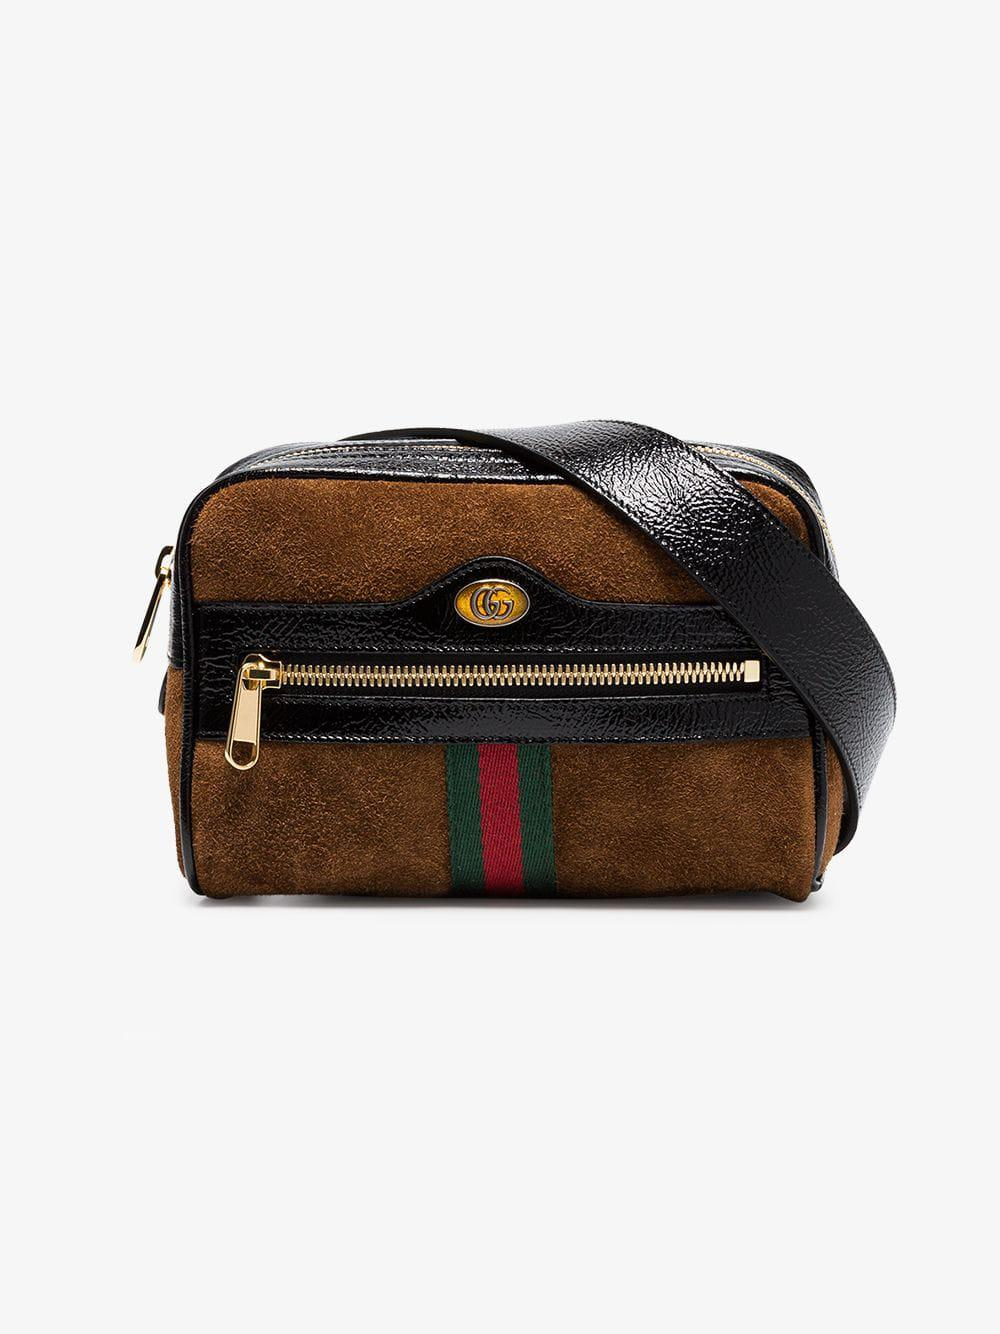 422360eab908 Gucci Small Suede Ophidia Belt Bag in Brown - Save 7% - Lyst